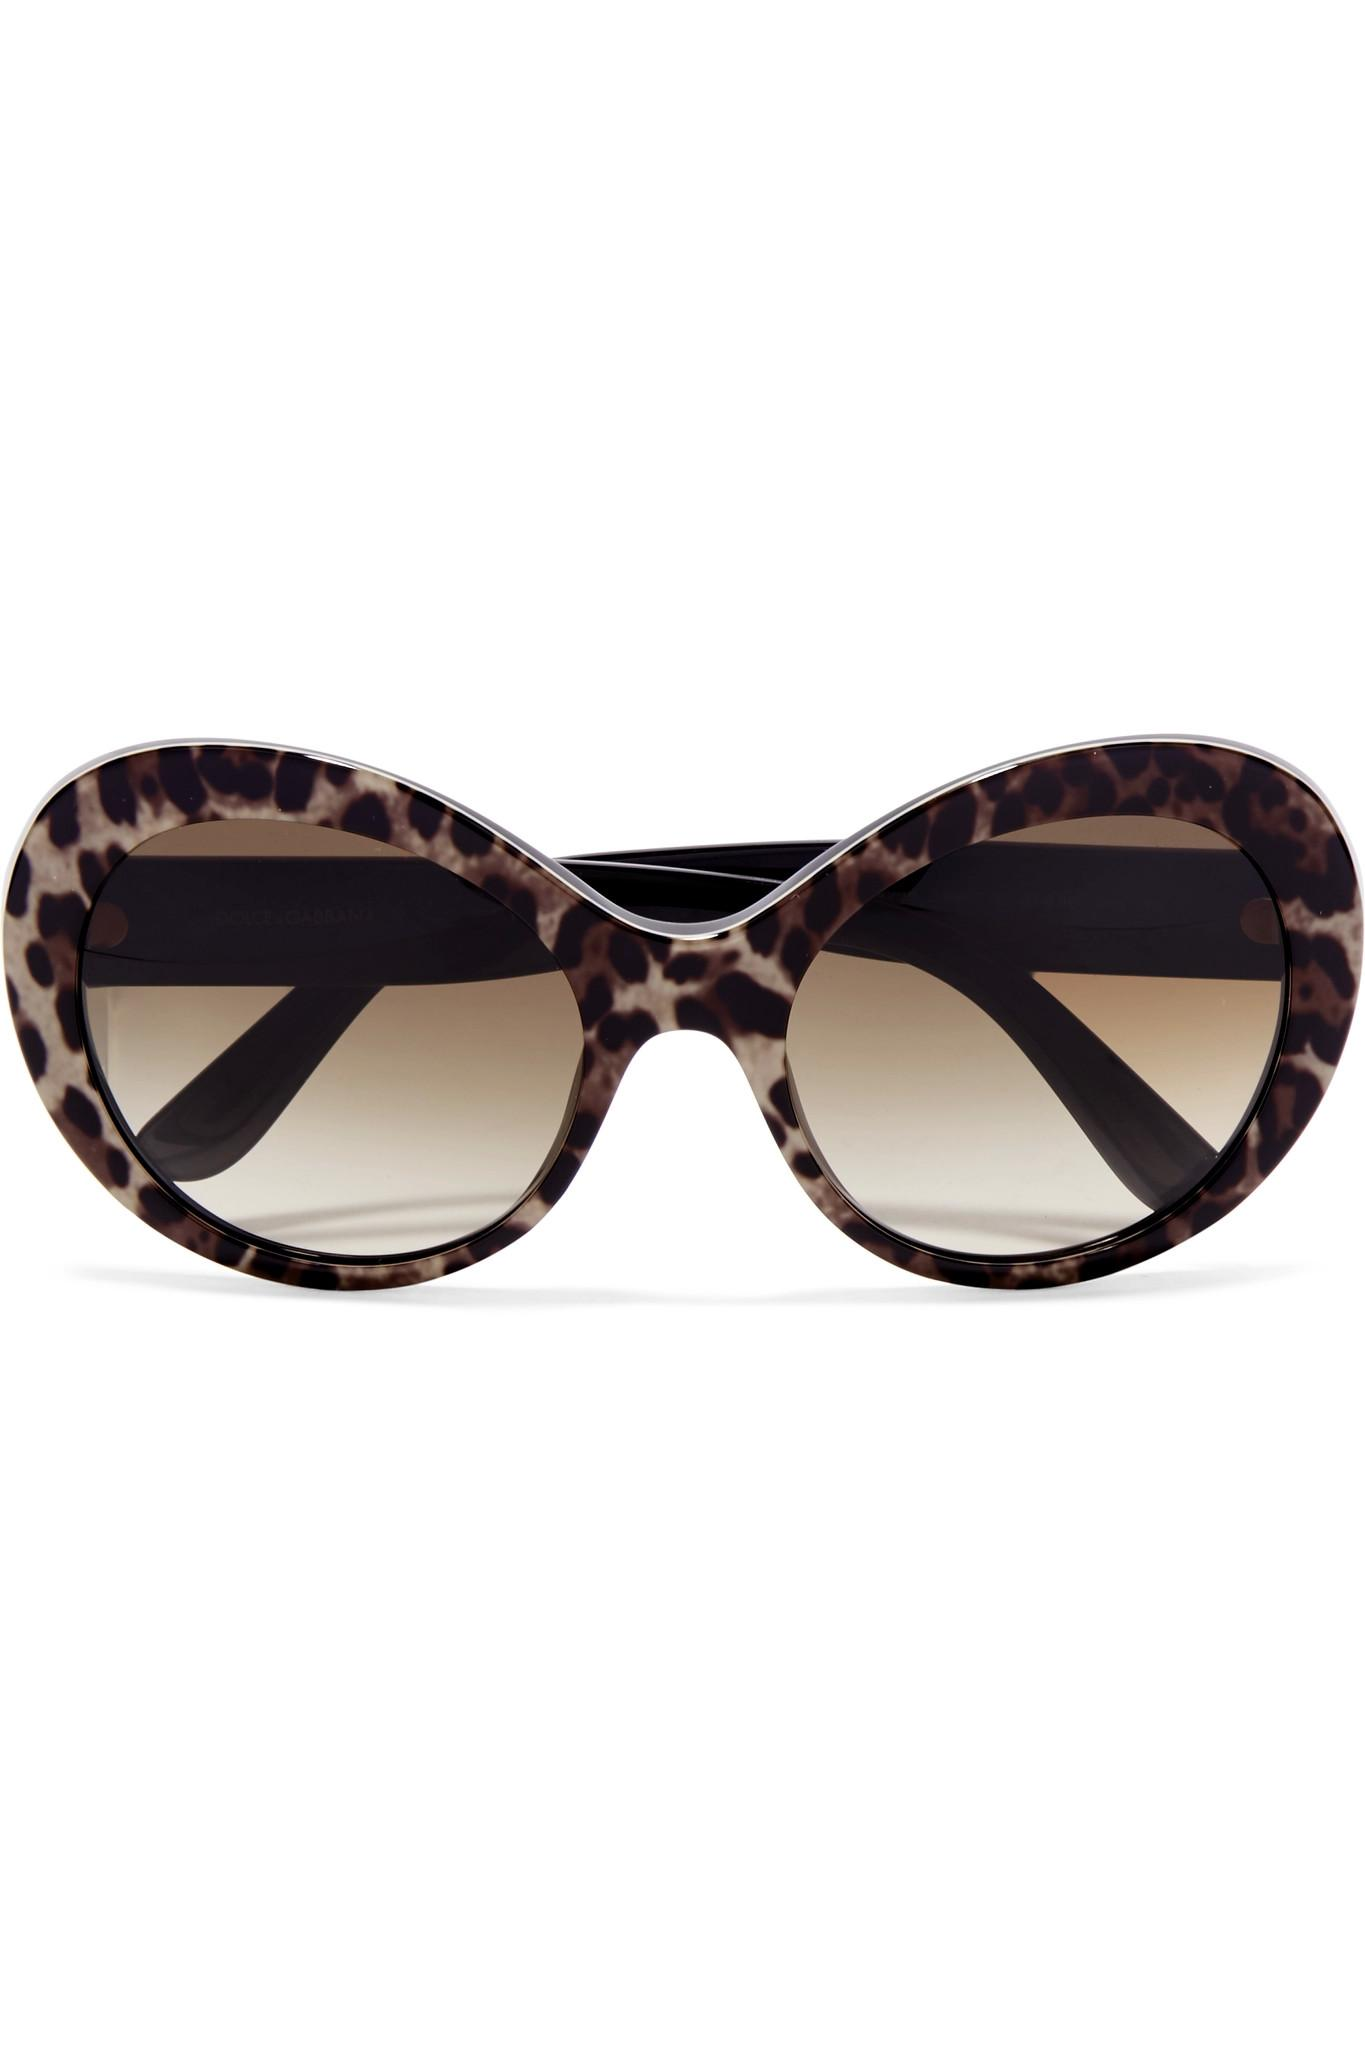 6dc6b02e6cf Dolce And Gabbana Oversized Cat Eye Sunglasses - Ontario Active ...